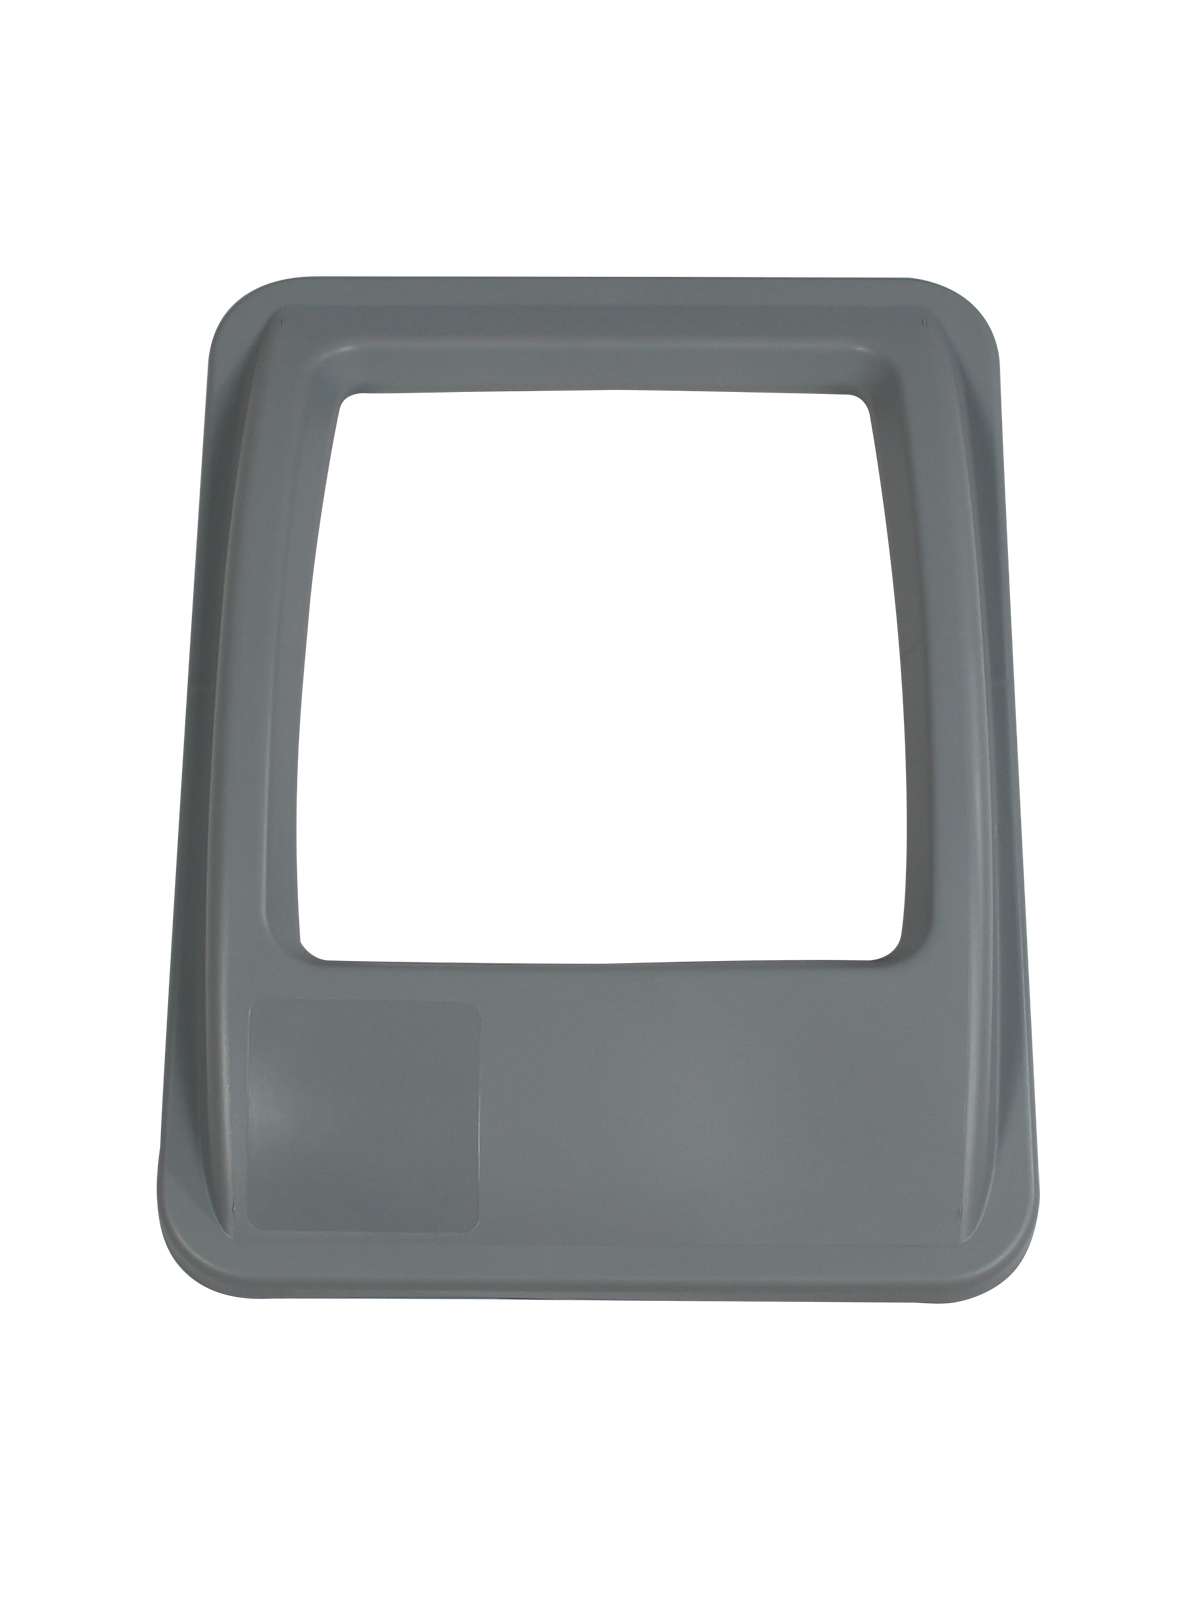 WASTE WATCHER XL - Lid - Full - Executive Grey